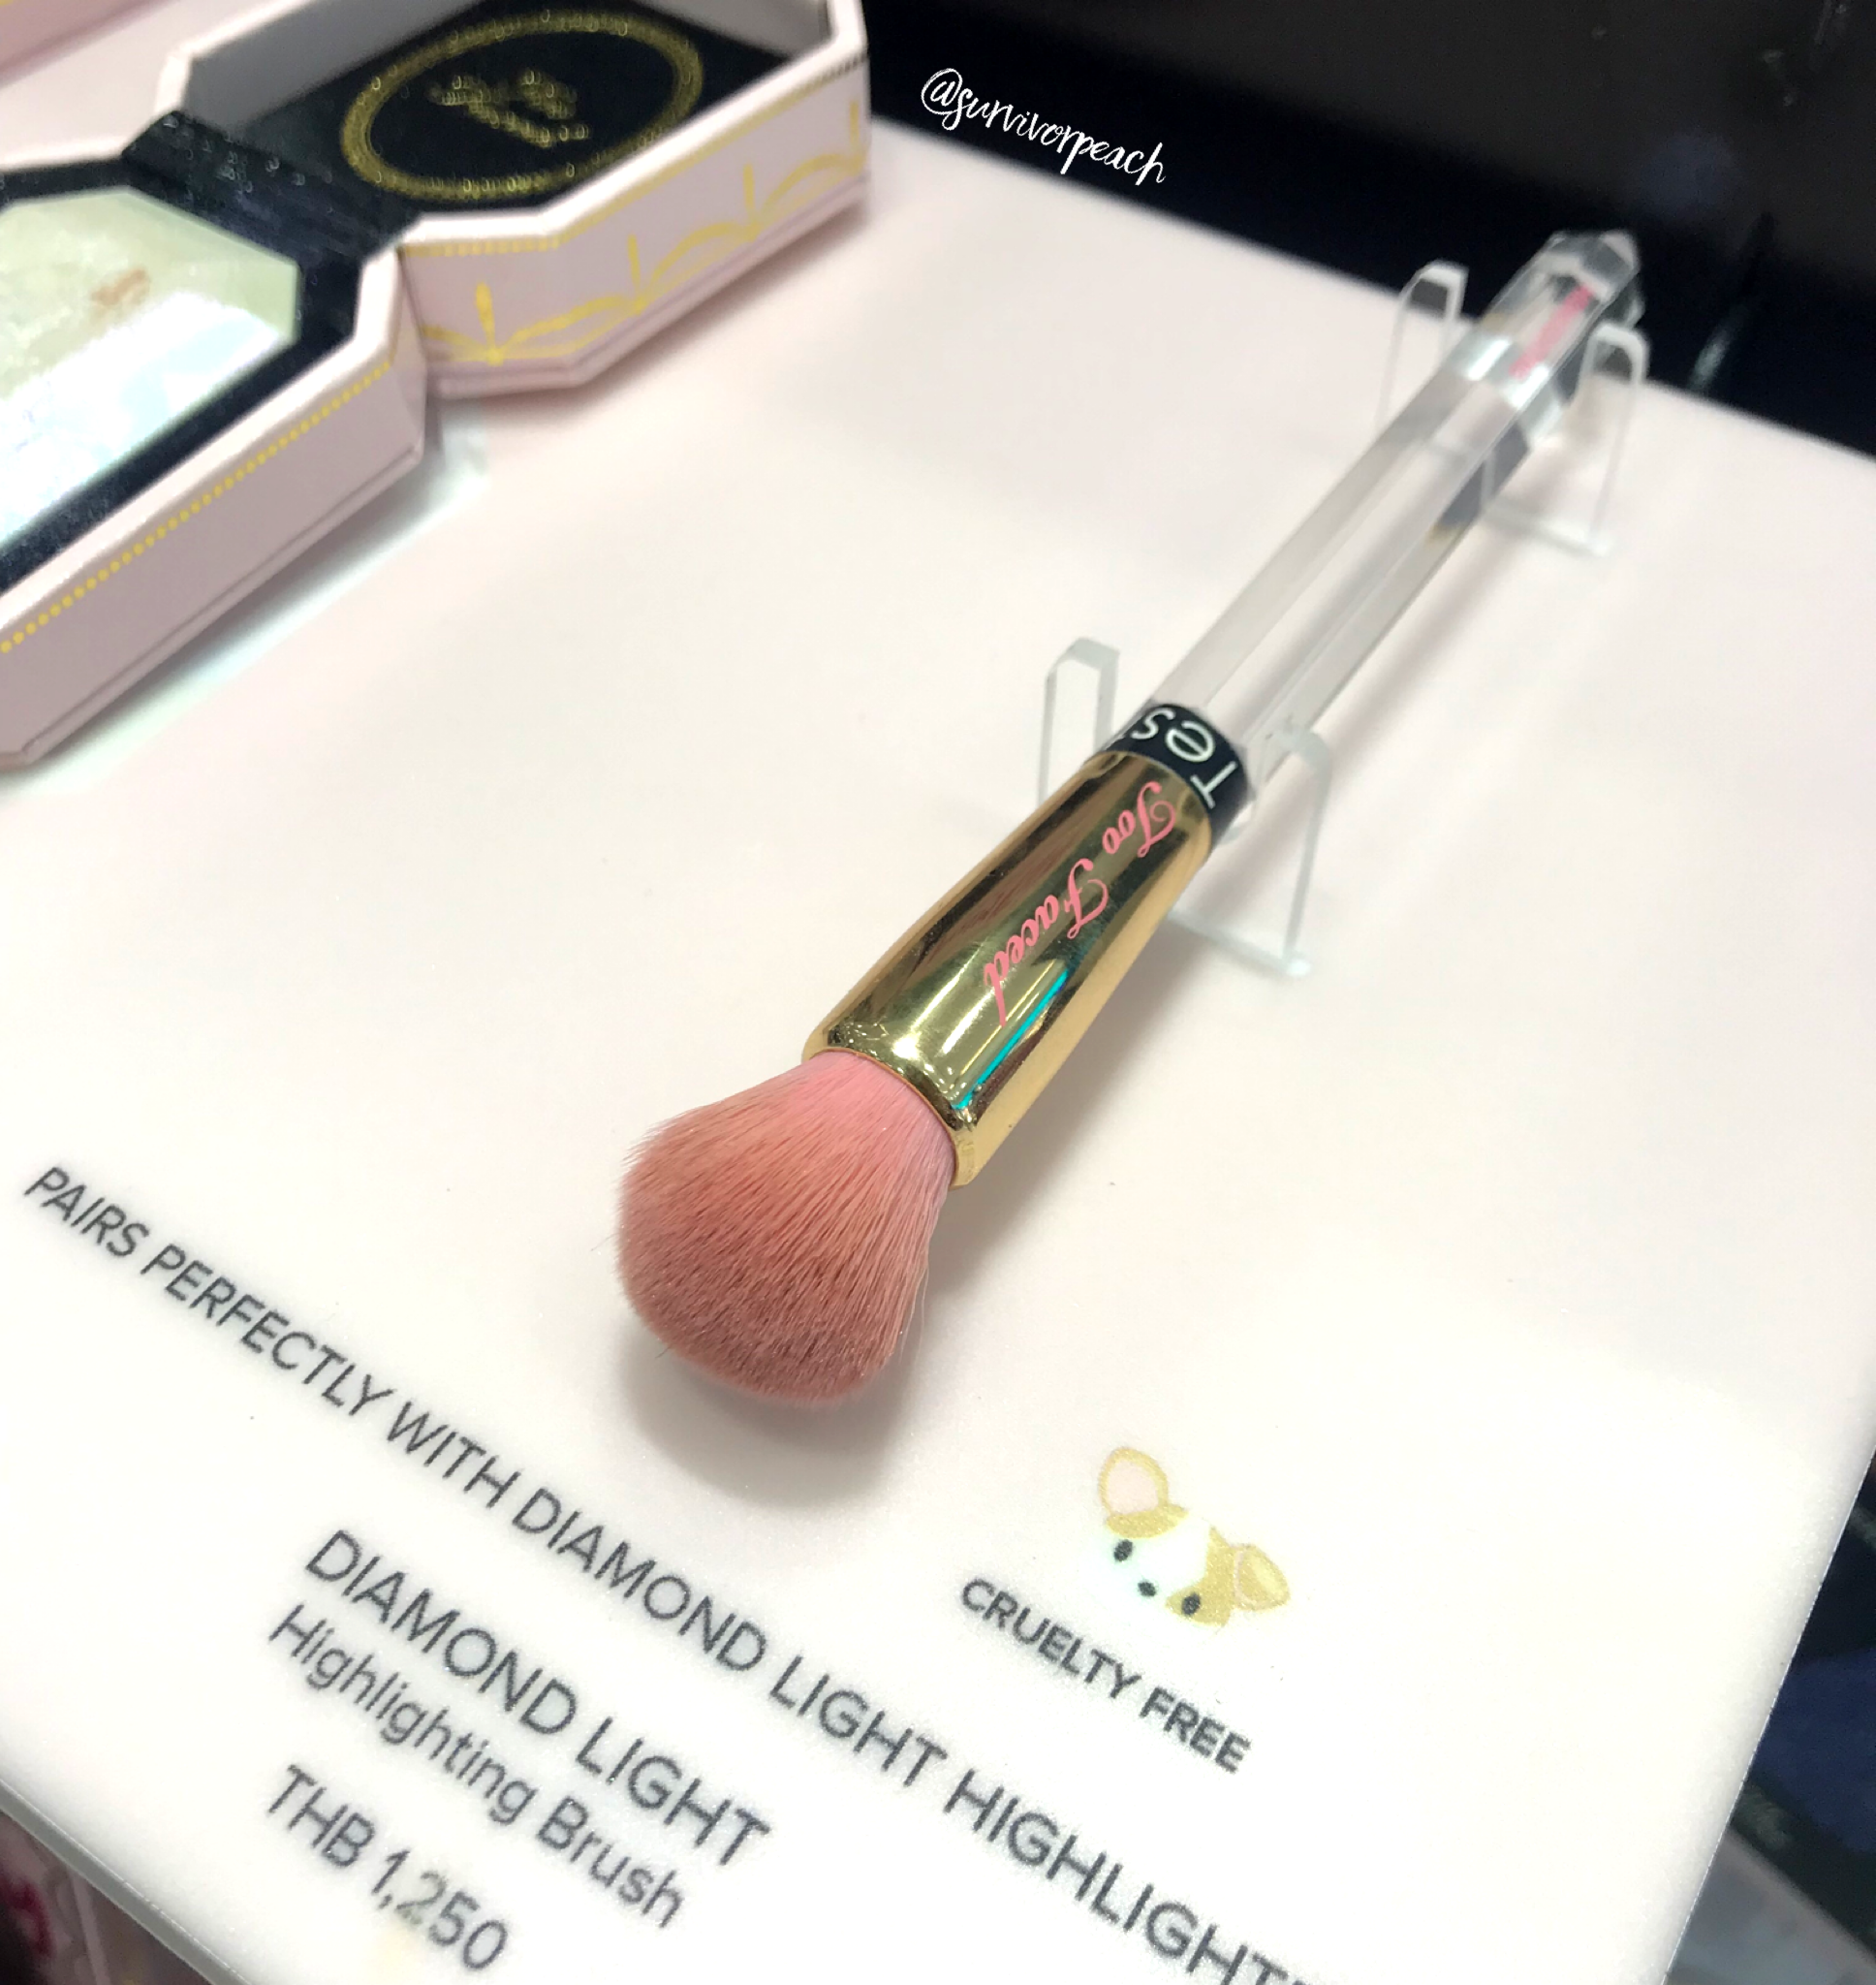 Toofaced Diamond Light Highlighting Brush